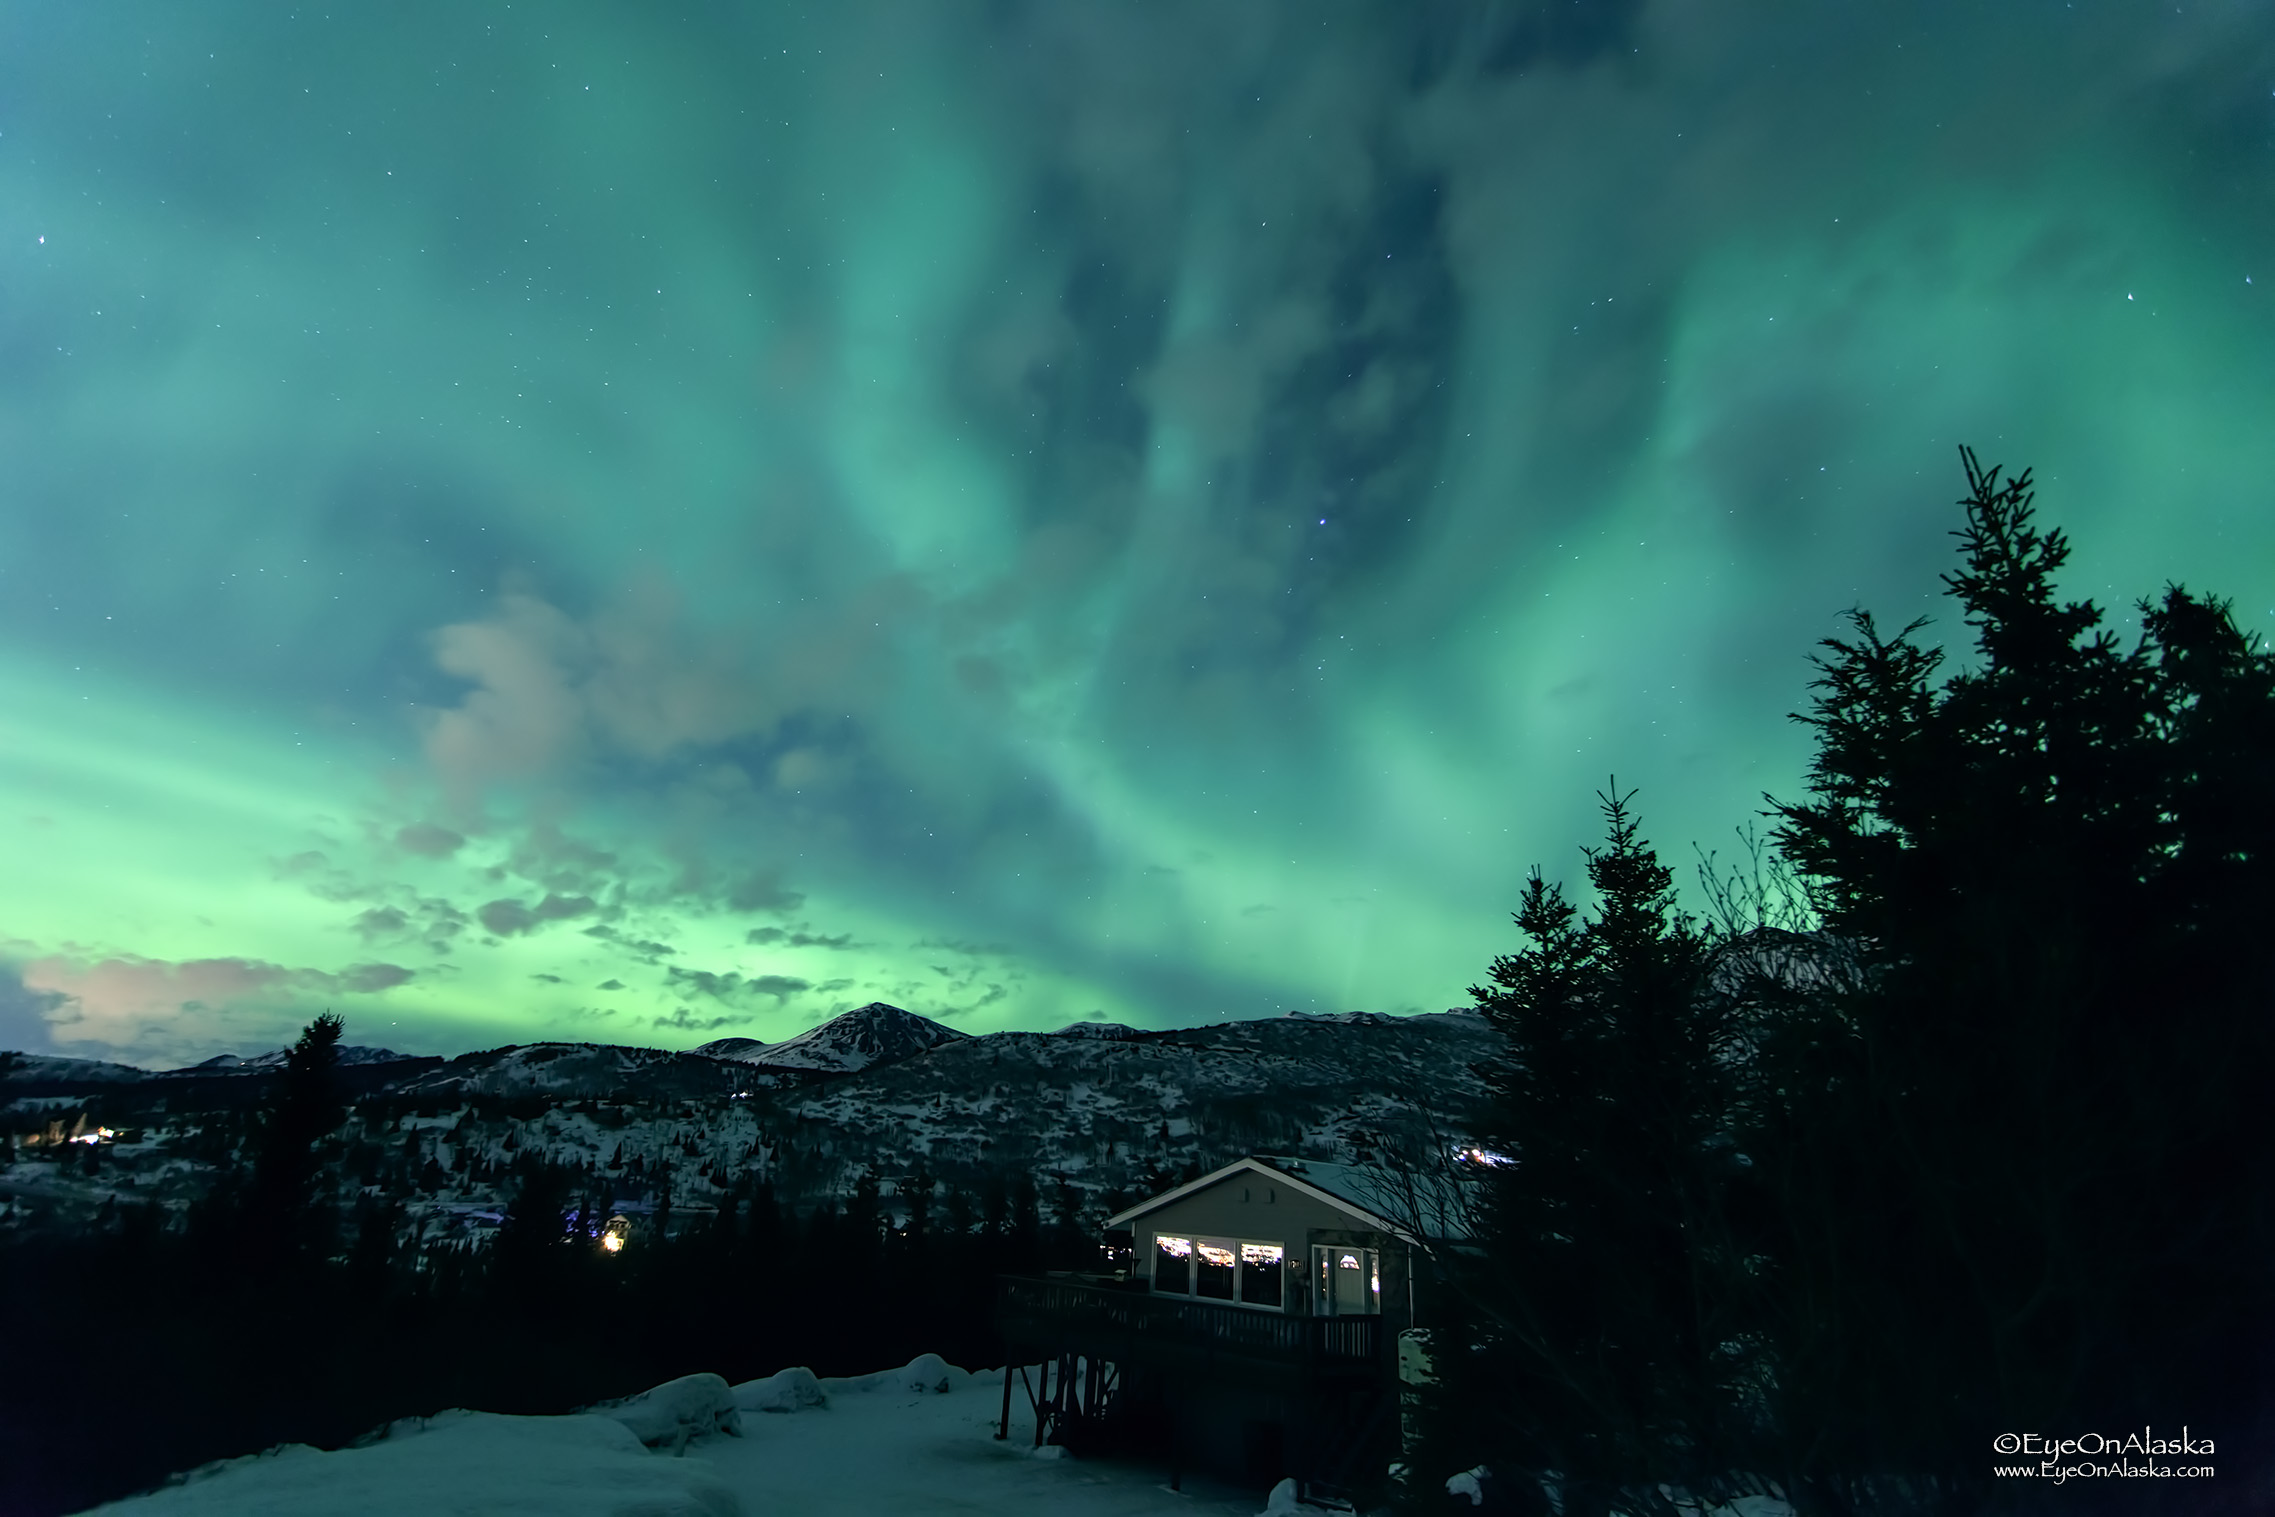 Our place bathed in aurora. And you wonder why we love living here so much!